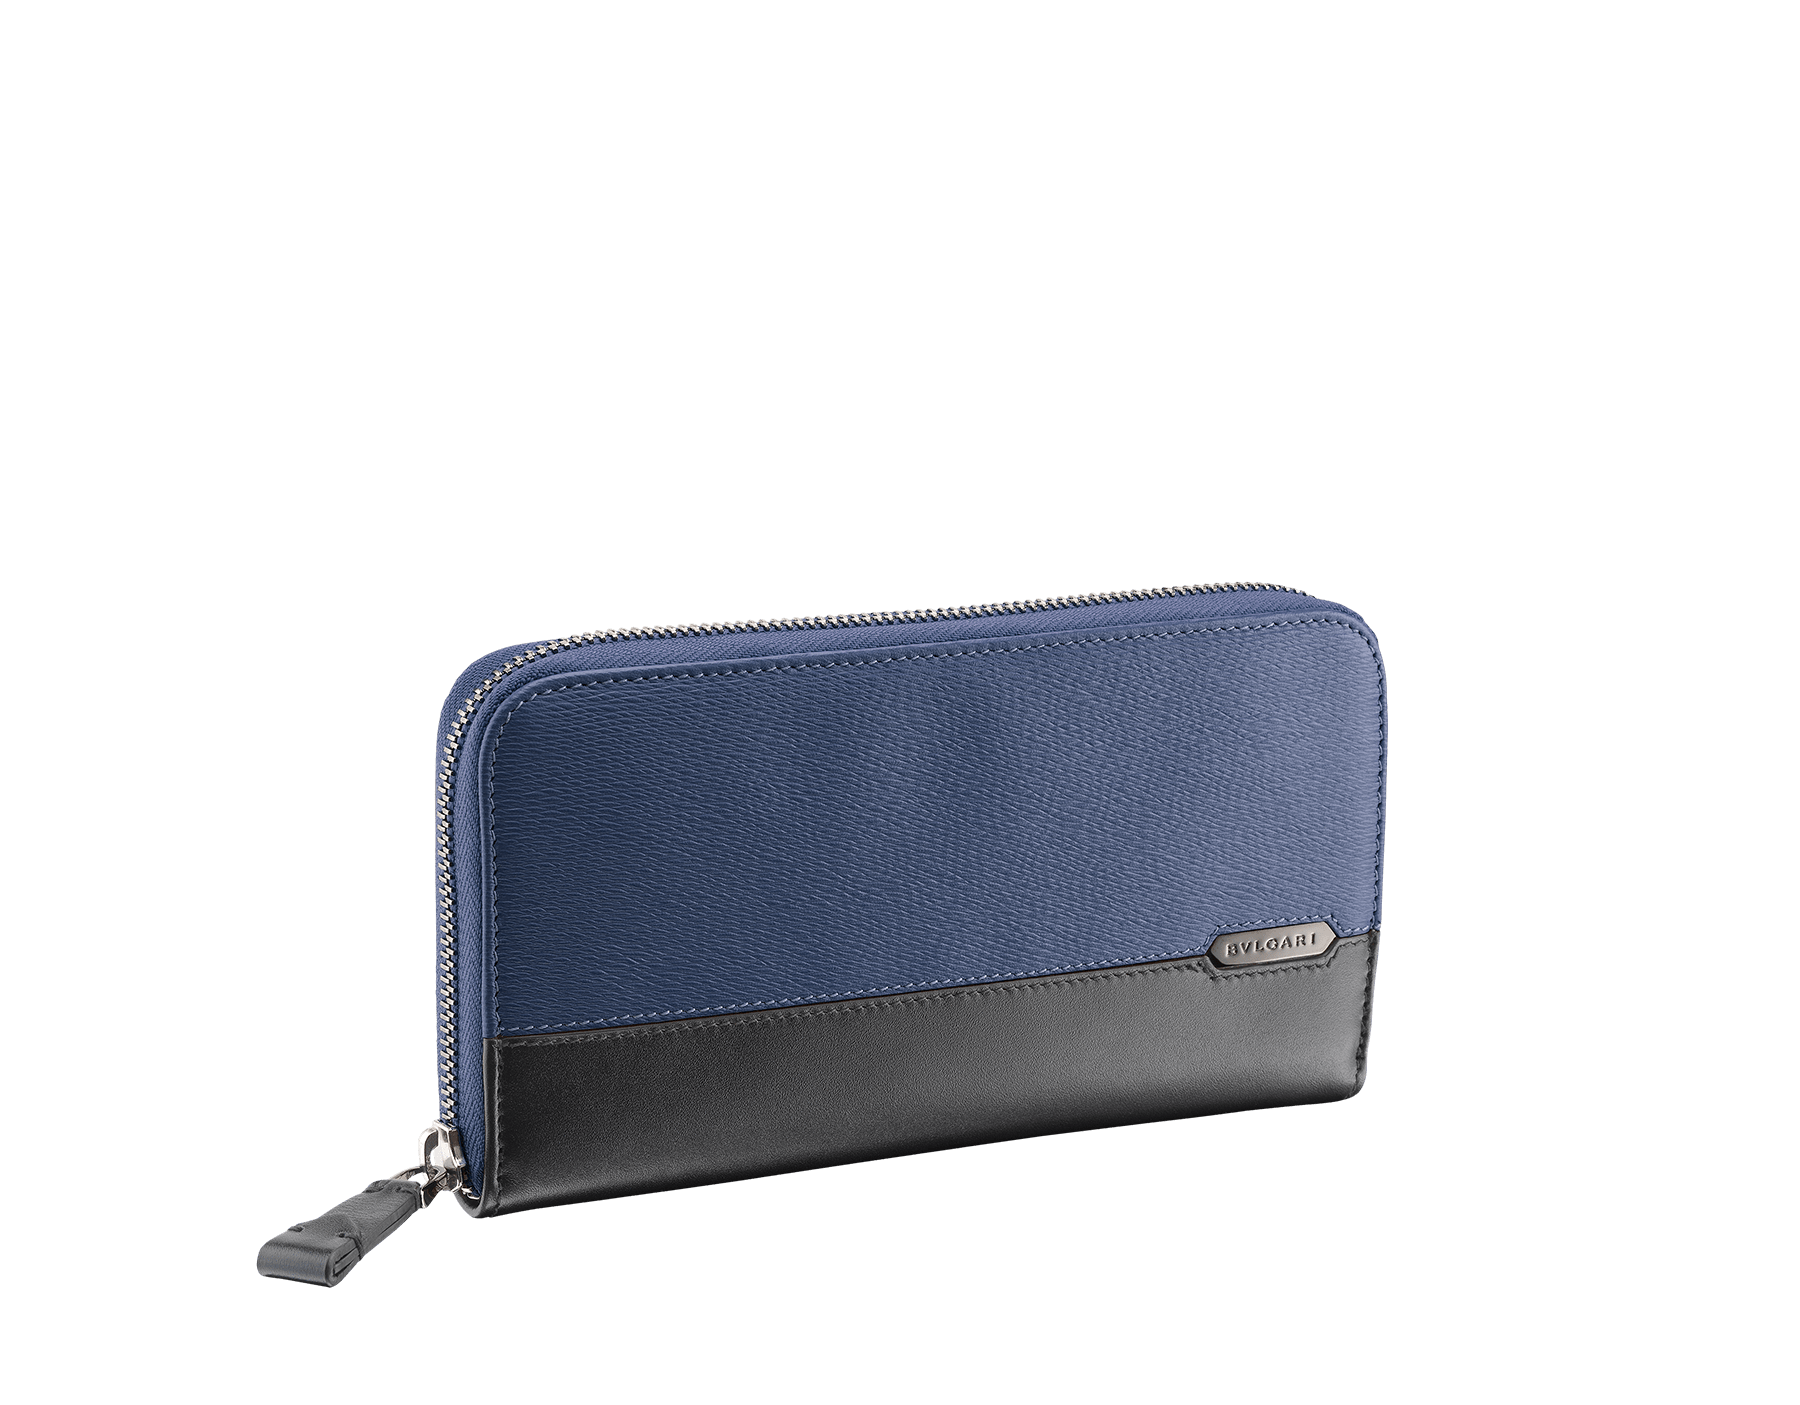 Man zipped wallet in denim sapphire grazed calf leather and black calf leather. Bulgari logo on iconic Serpenti Scaglie Man metal plate finished in dark ruthenium. 282779 image 1